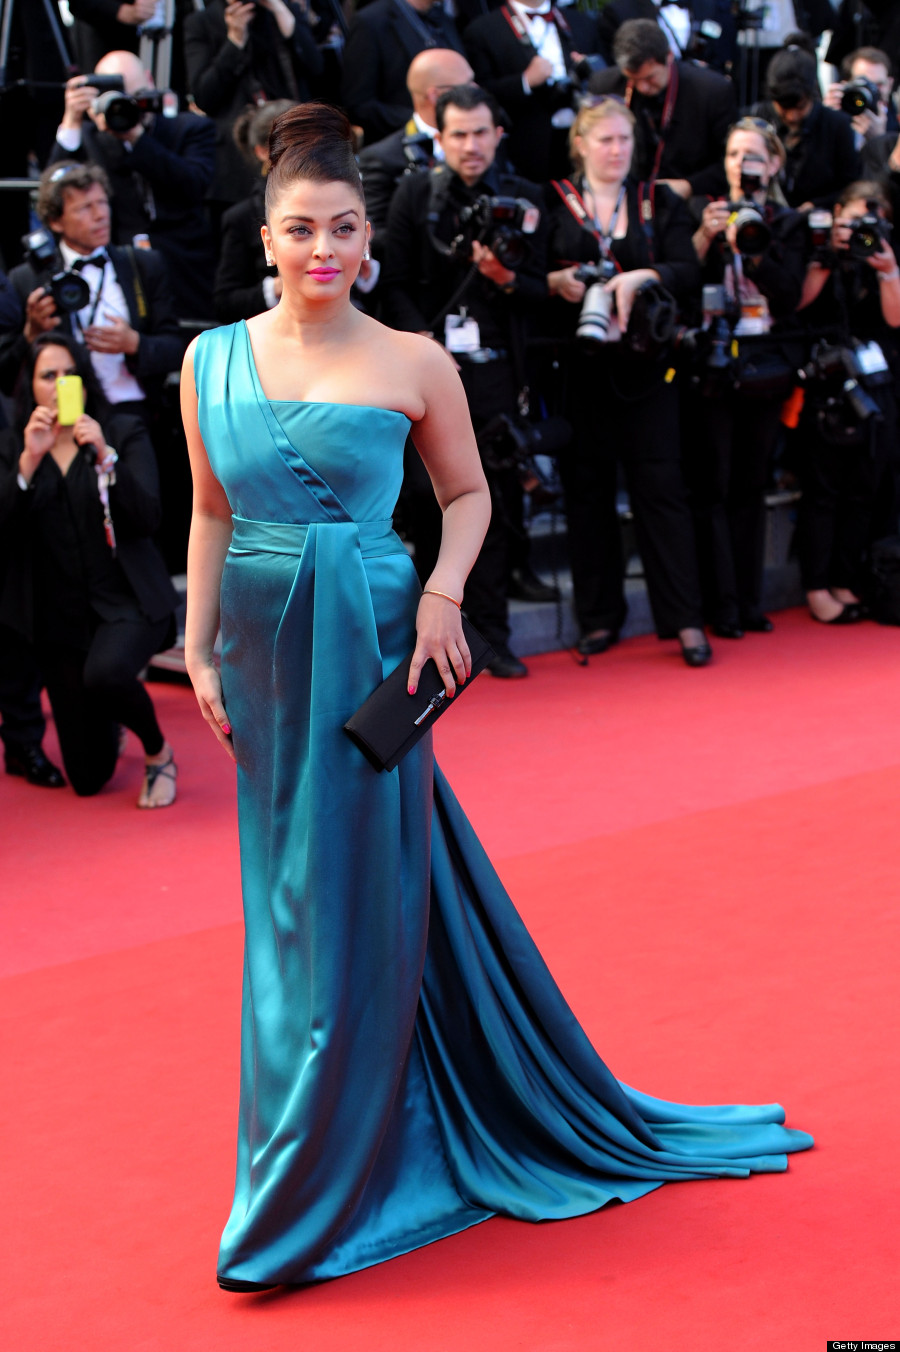 CANNES, FRANCE - MAY 21: Actress Aishwarya Rai attends the 'Cleopatra' premiere during The 66th Annual Cannes Film Festival at The 60th Anniversary Theatre on May 21, 2013 in Cannes, France. (Photo by Dave J Hogan/Getty Images)